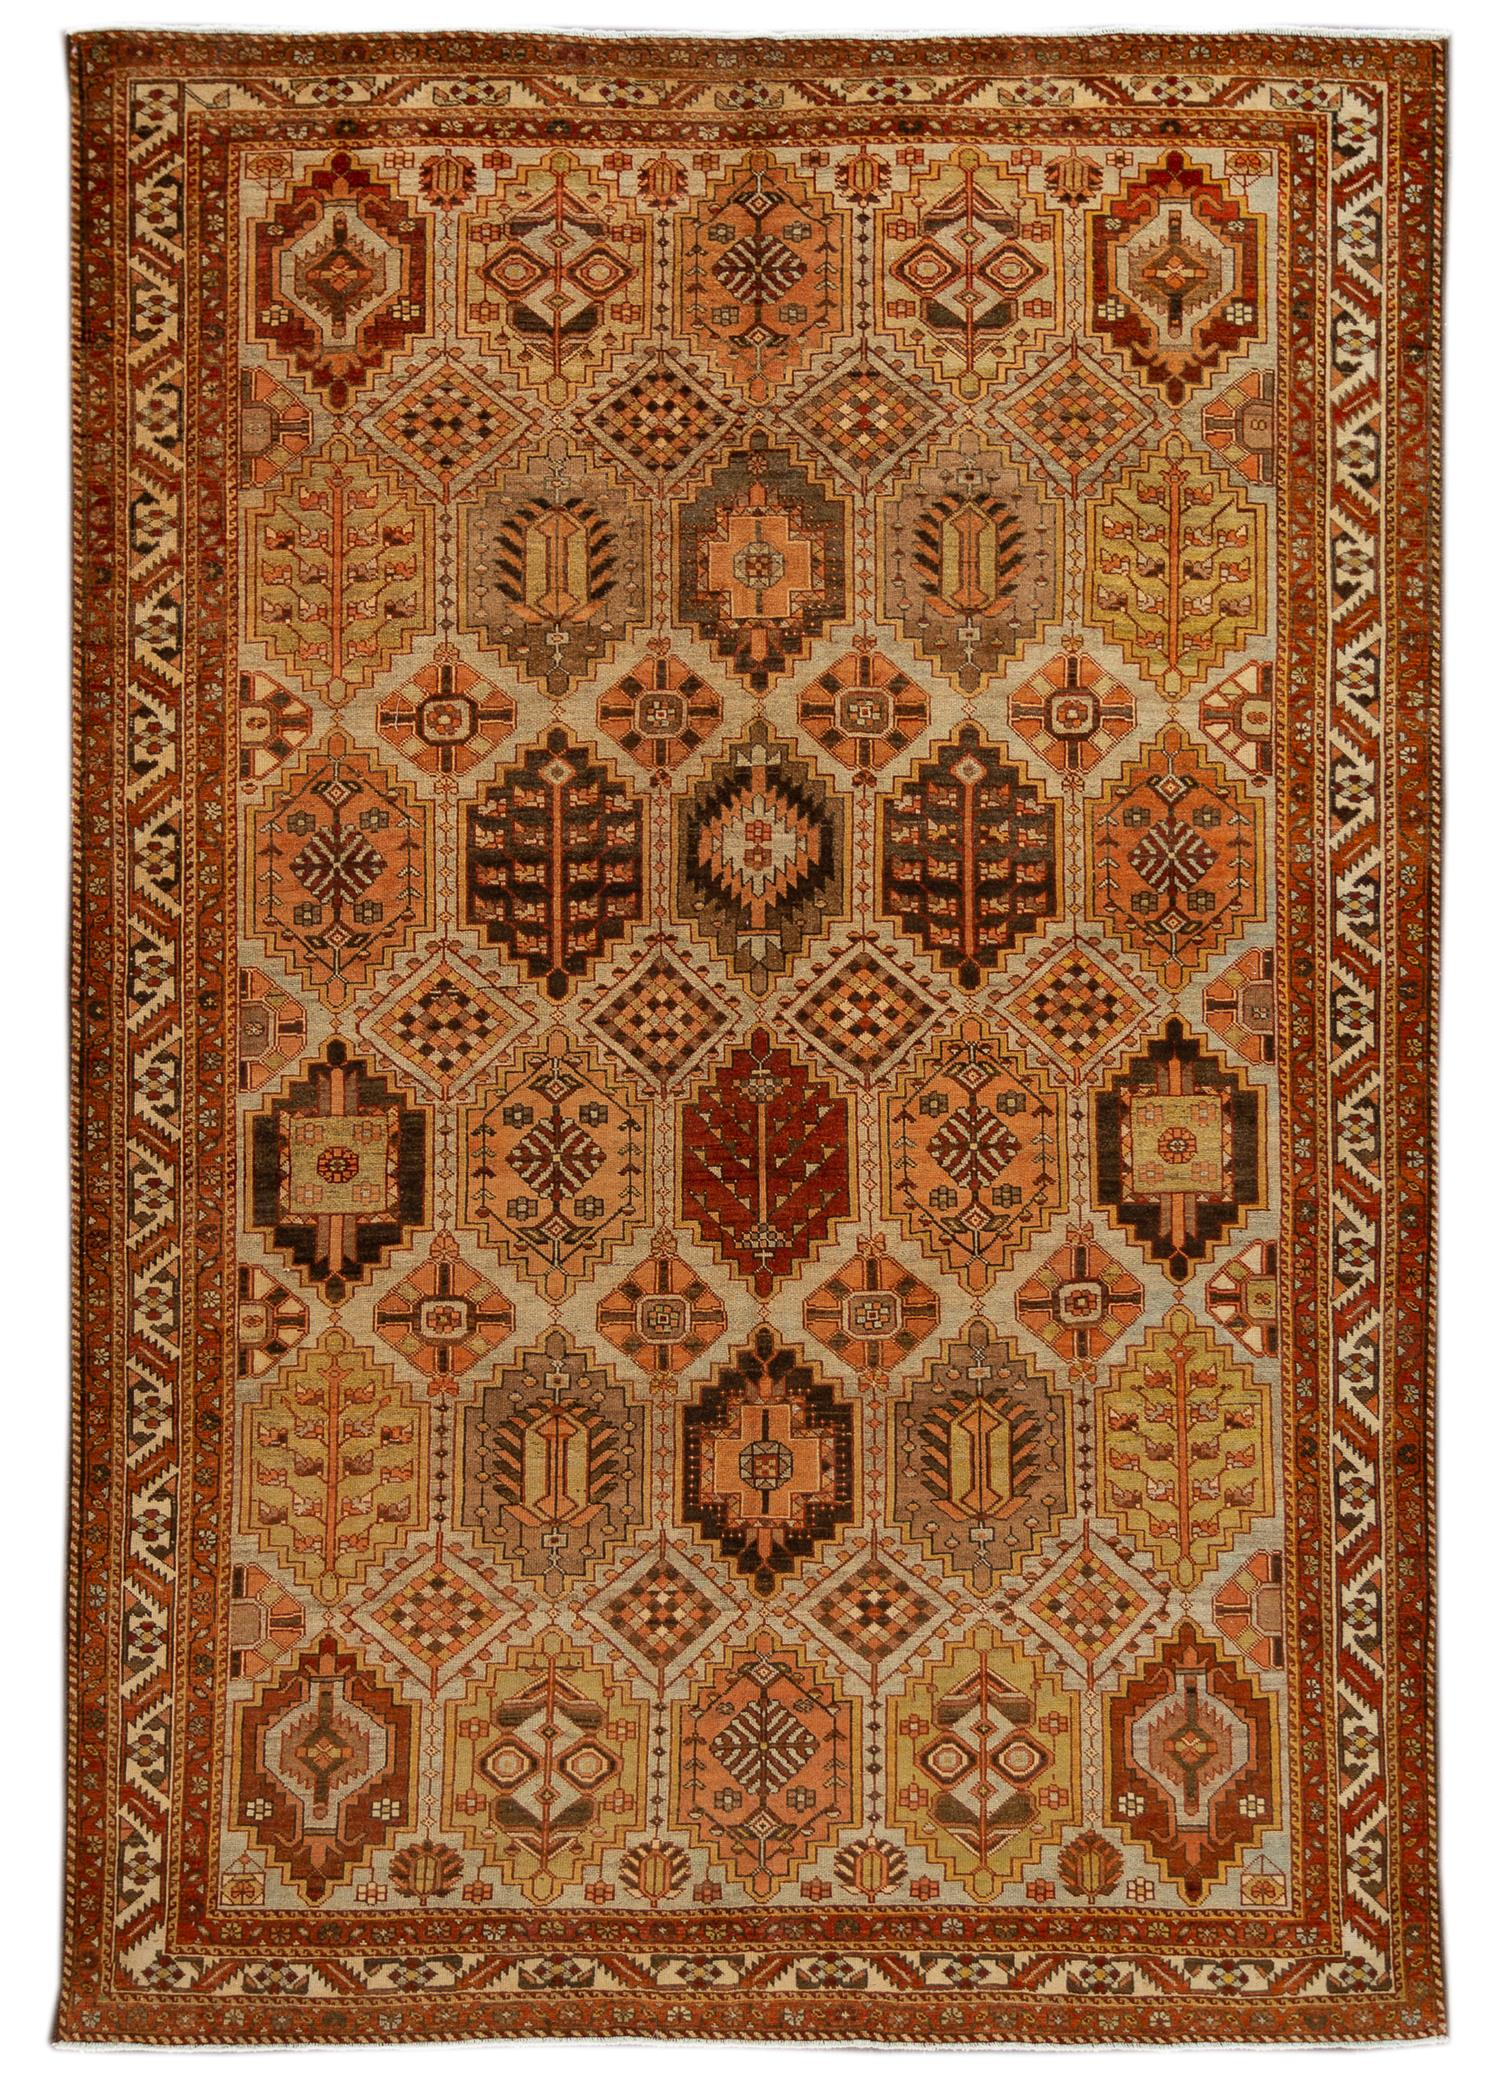 Antique Bakhtiari Rug, #10235261, 7X10